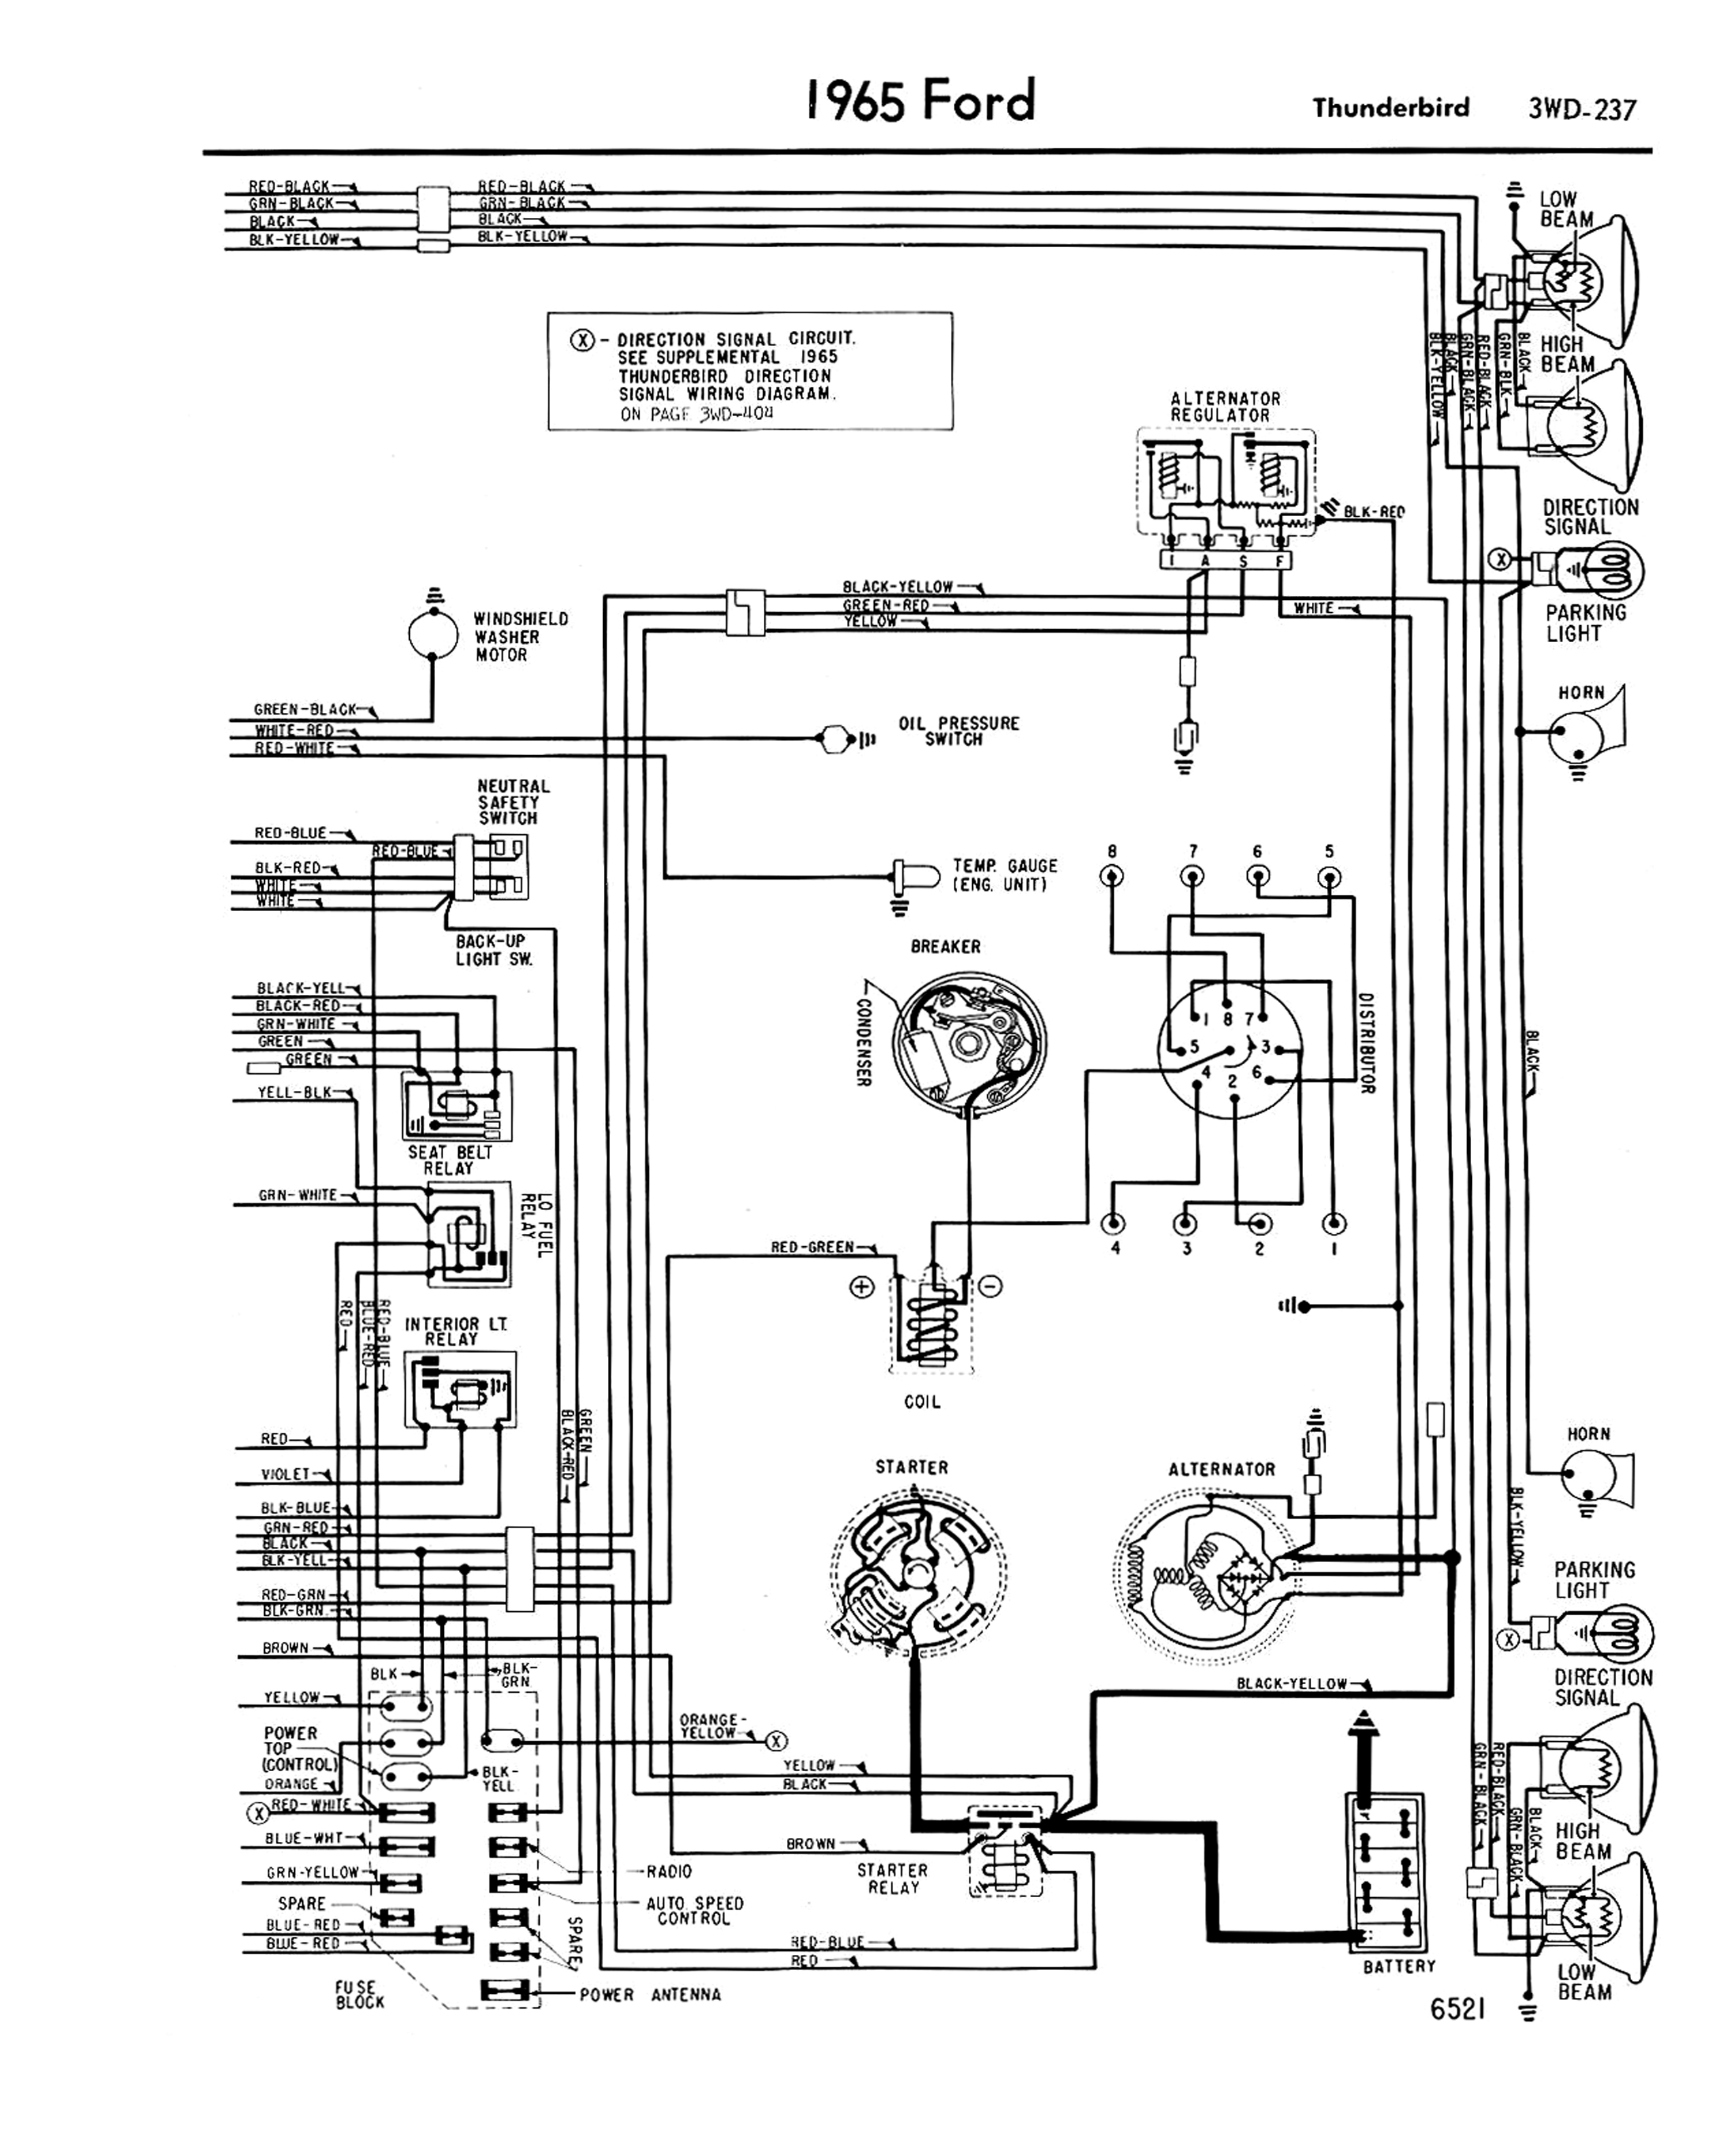 1972 Ford F100 Ignition Switch Wiring Diagram : 45 Wiring